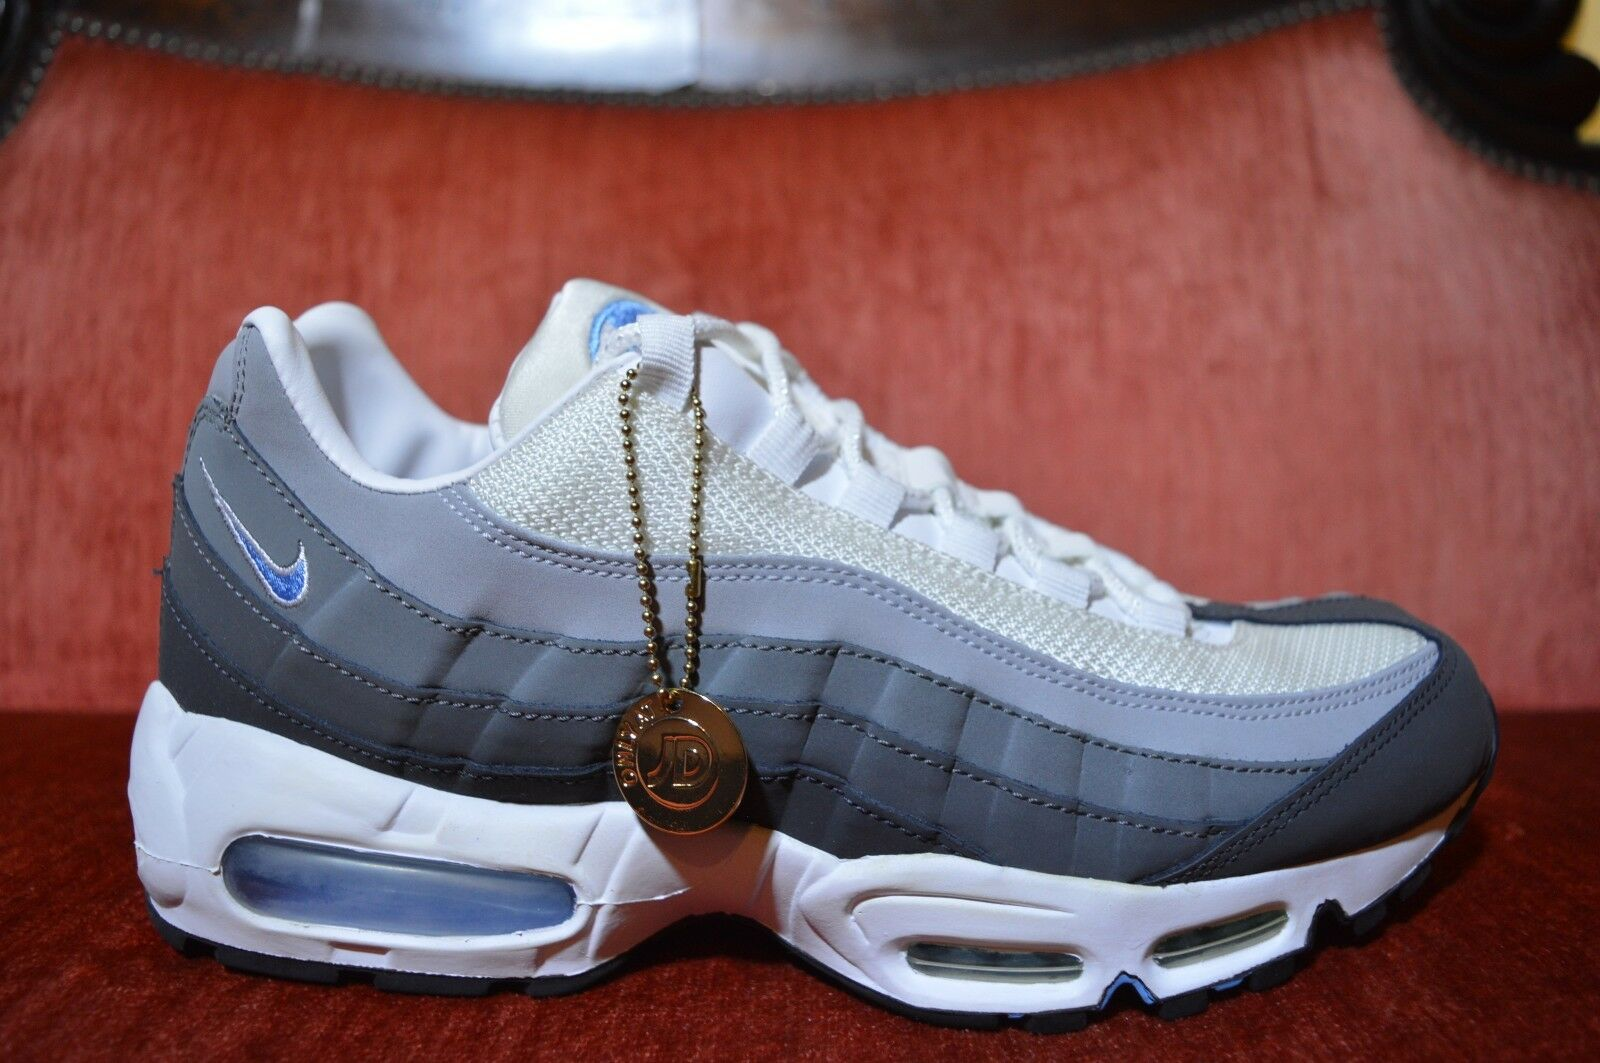 0bfef1b0eb RARE Nike Air Max 95 JD Sports Exclusive 329393-006 Size DS bluee White SI  10 nzvgkh1505-Athletic Shoes